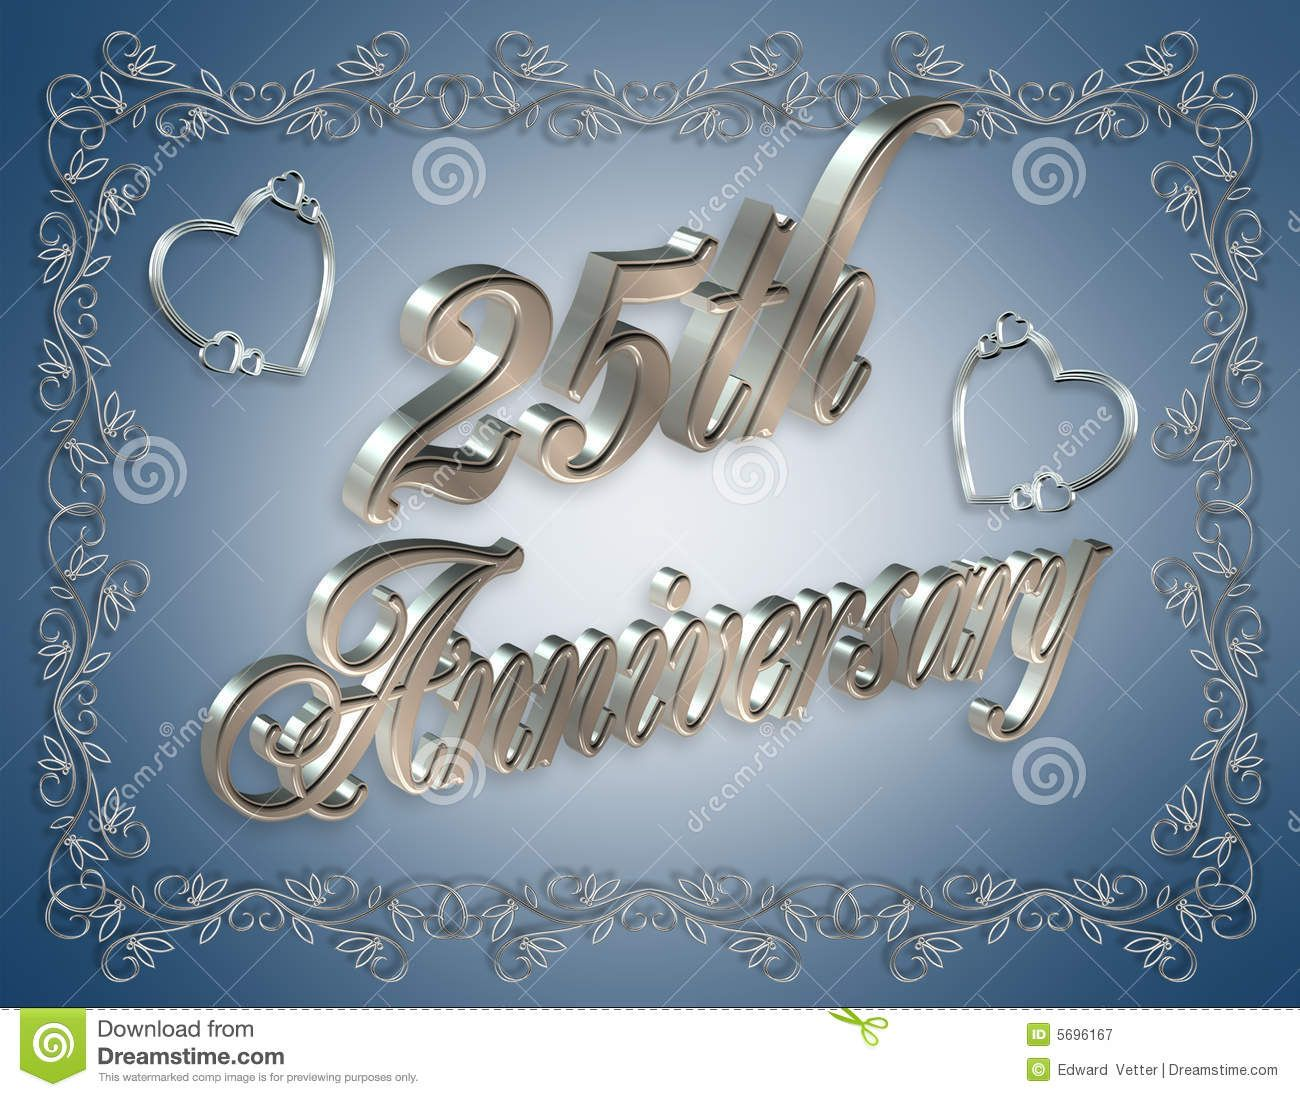 Th wedding anniversary cards free download google